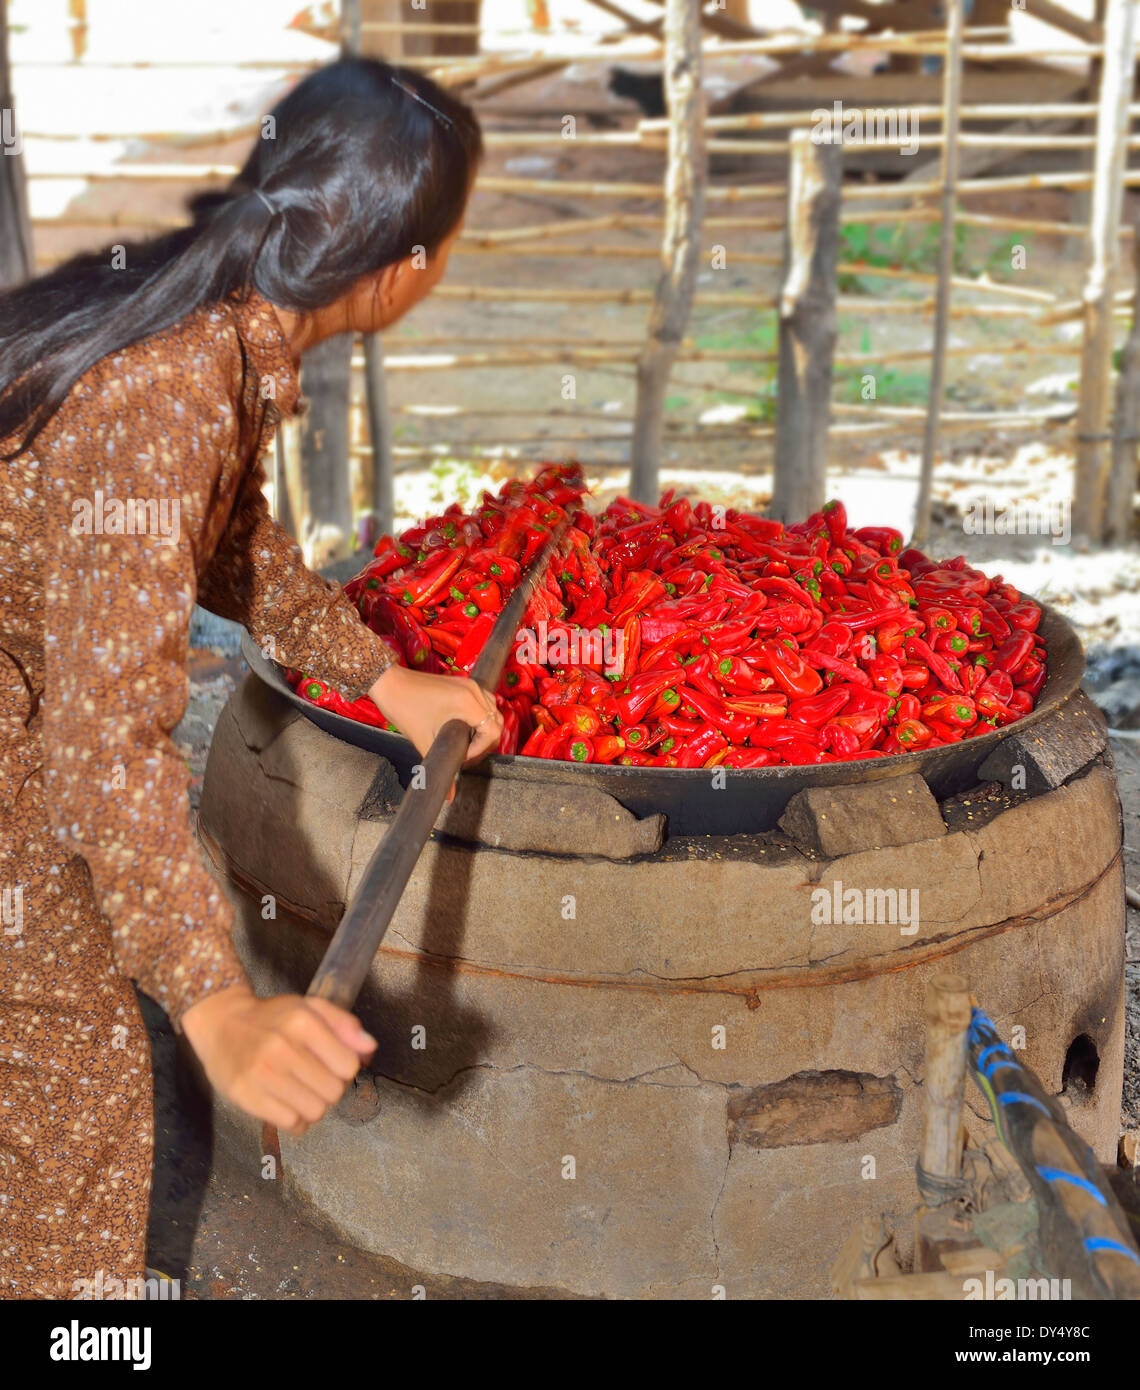 Cambodian woman cooks chili peppers in an open fired cauldron in the preparation of chili peppers a cottage industry Stock Photo